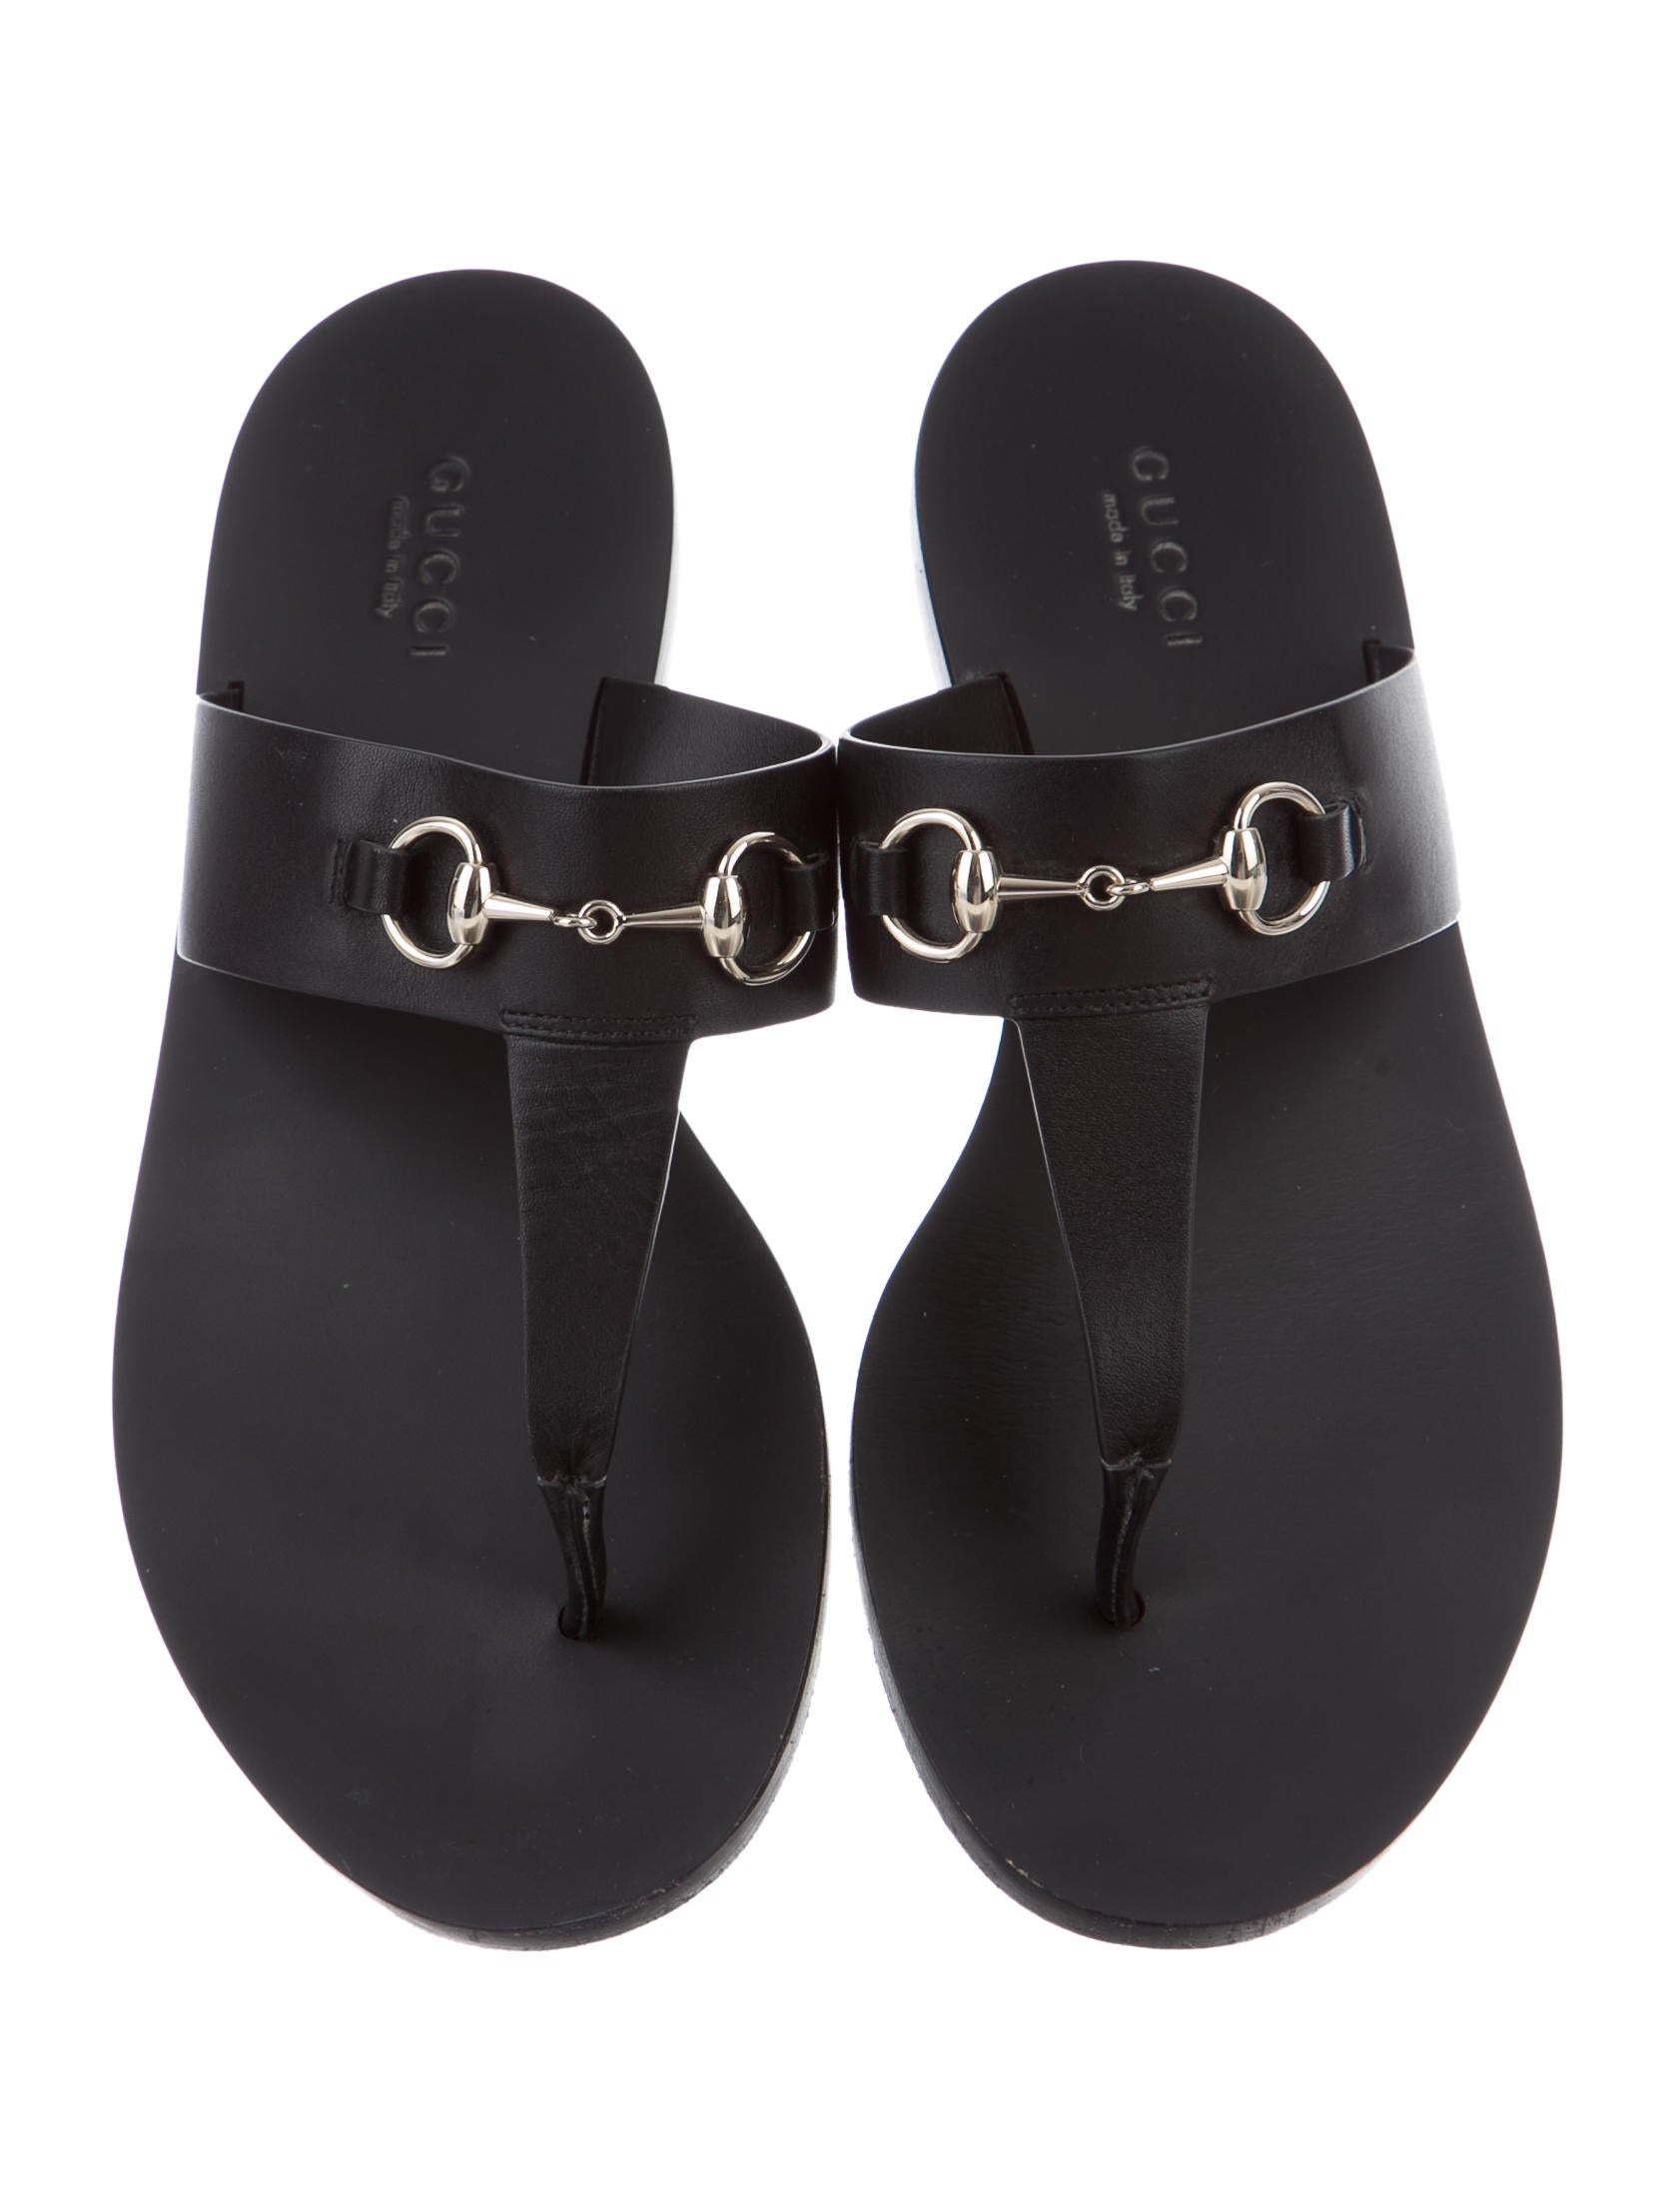 Gucci Horsebit Leather Slide Sandals - Shoes - GUC136899 ...